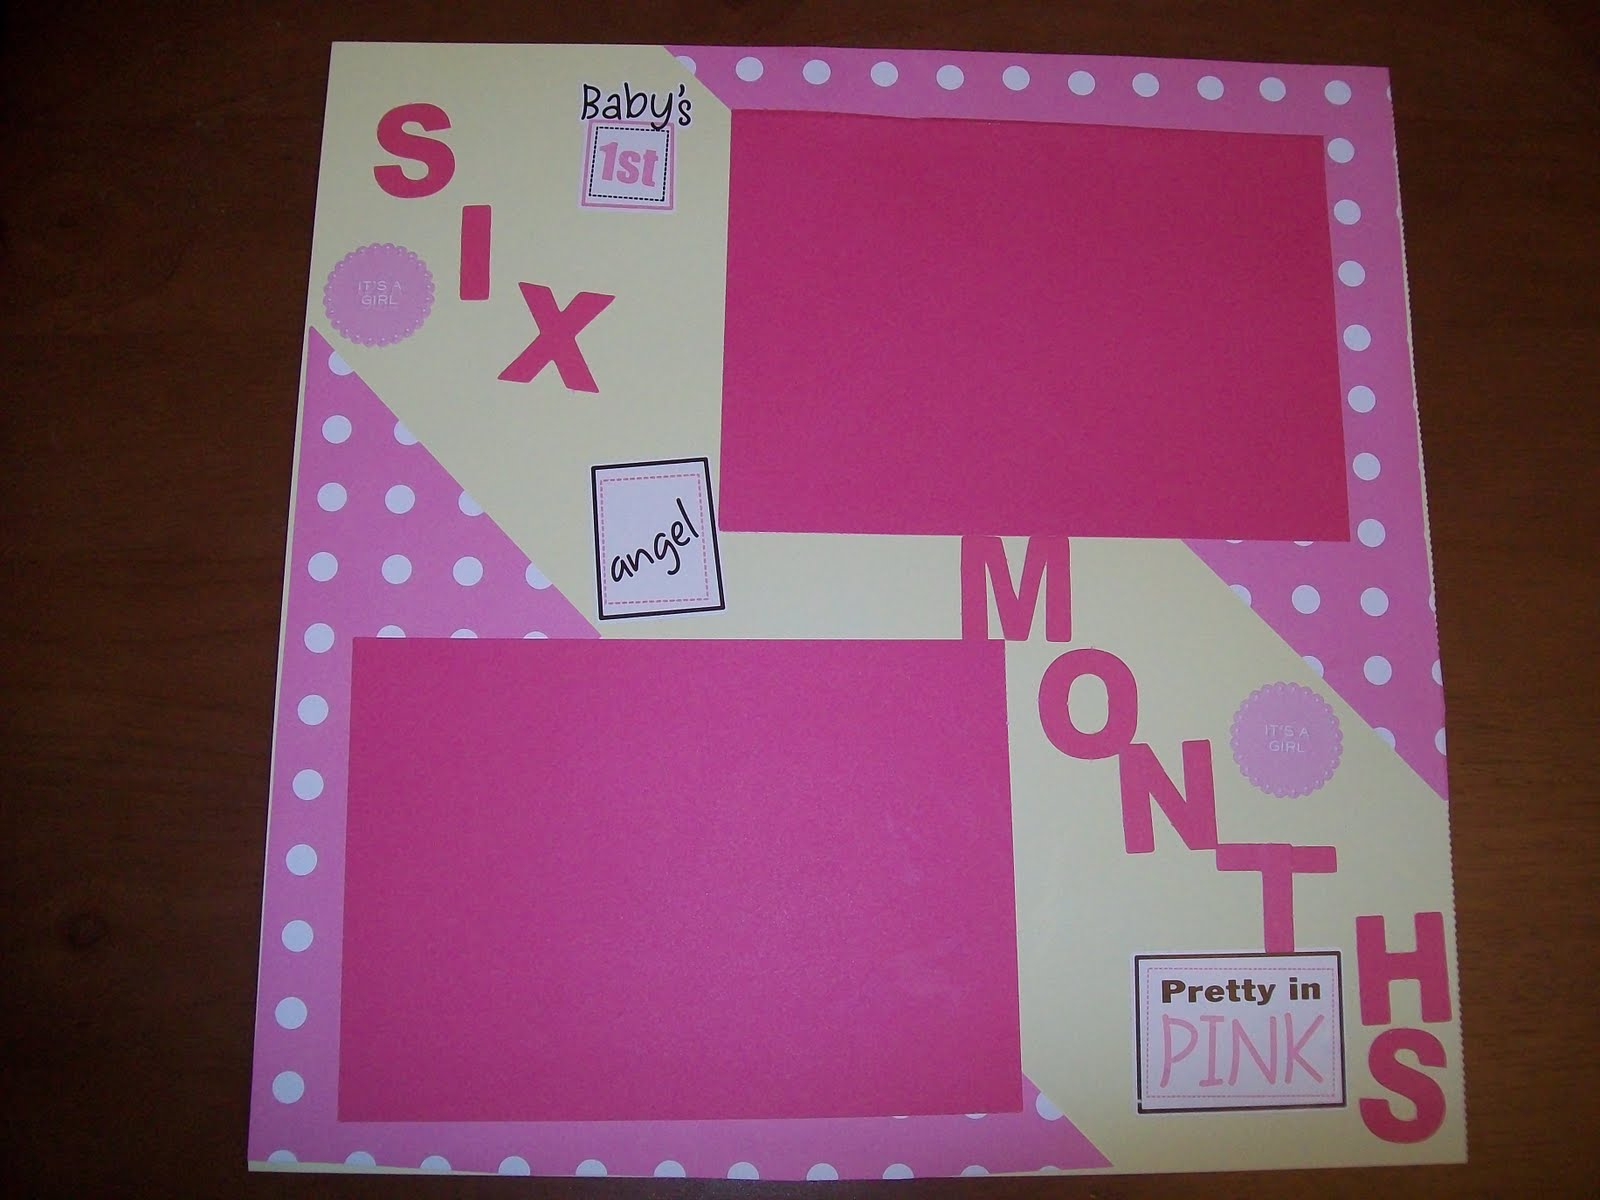 Baby girl scrapbook ideas - Here Are Photos Of Pages Of A Pre Made Baby Girl Scrapbook That I Made For A Gift